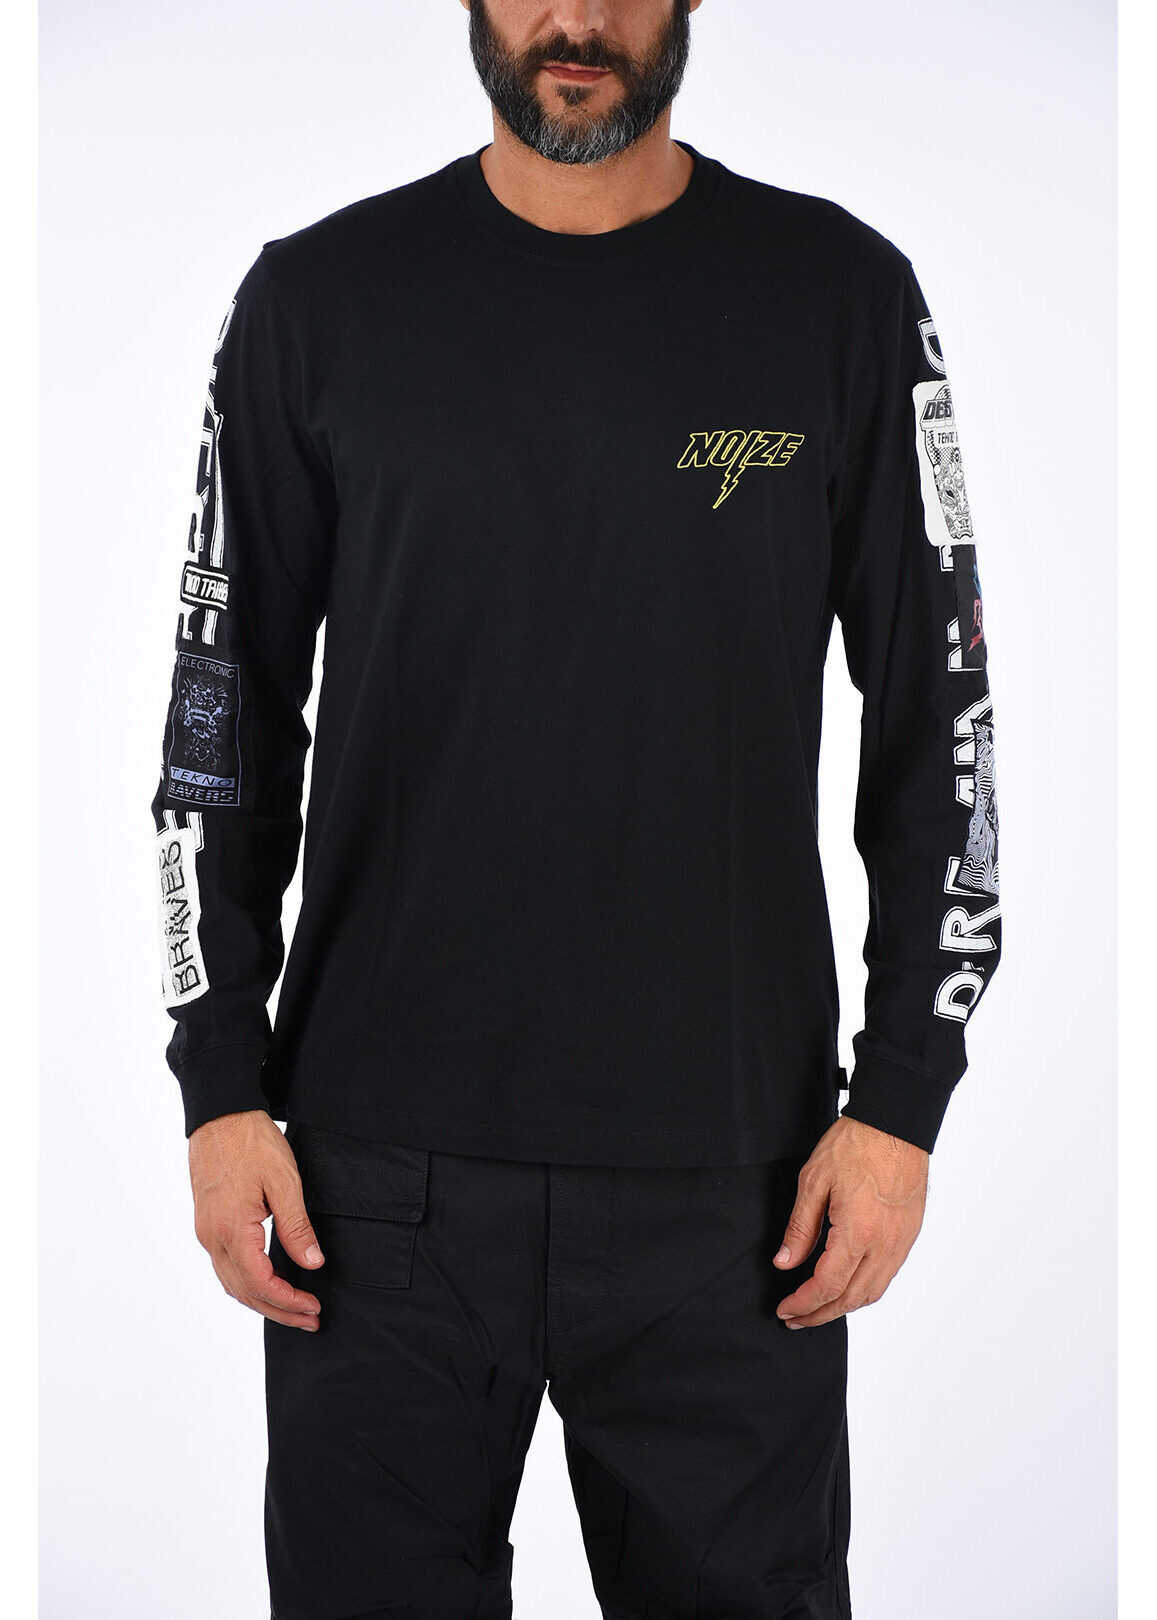 Embroidered JUST T-shirt